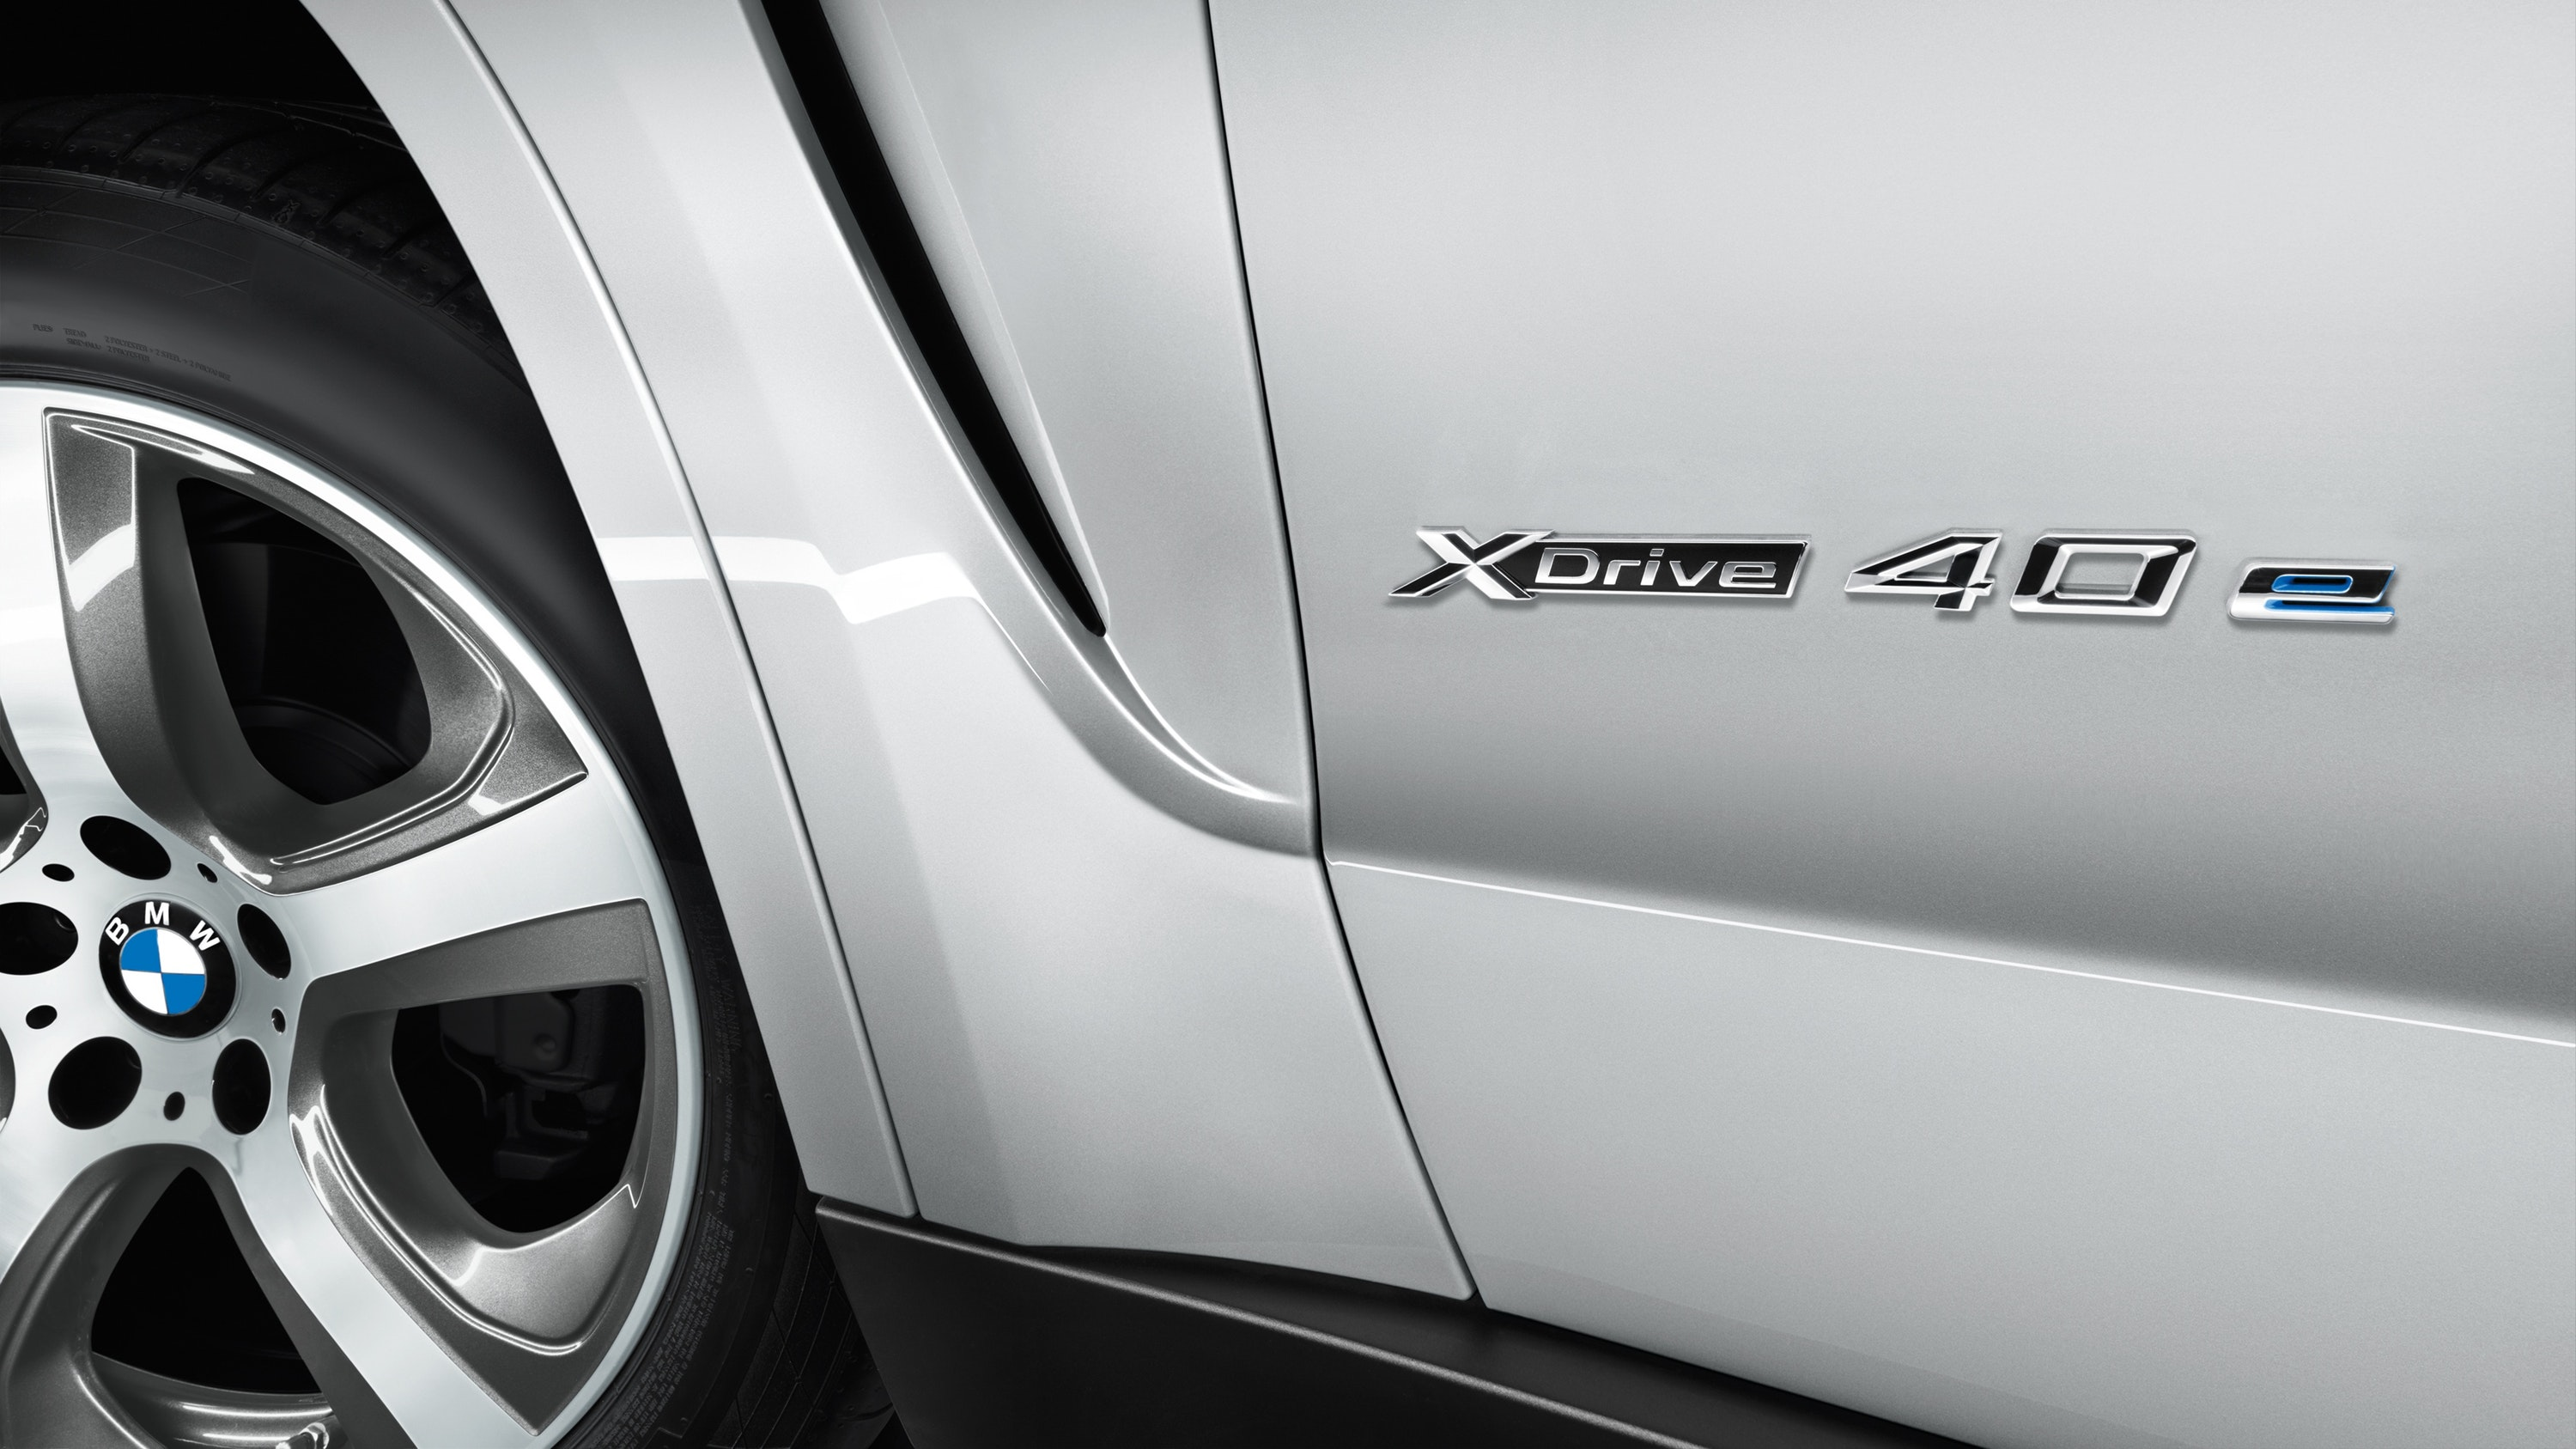 Close up of Xdrive badge